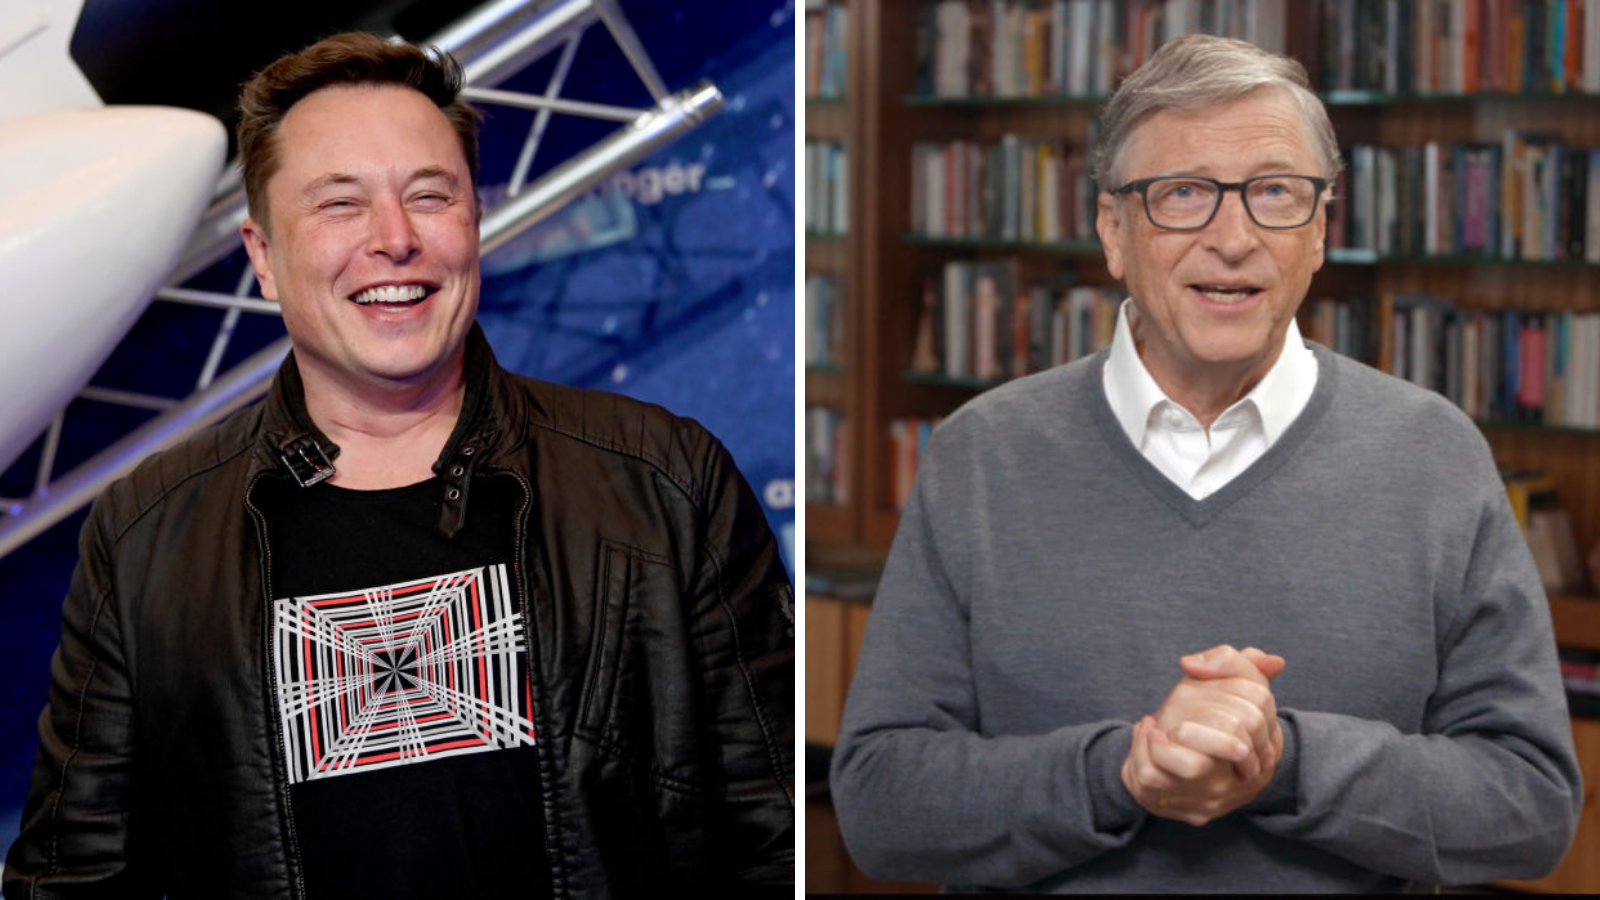 The one habit that powers Bill Gates' and Elon Musk's success